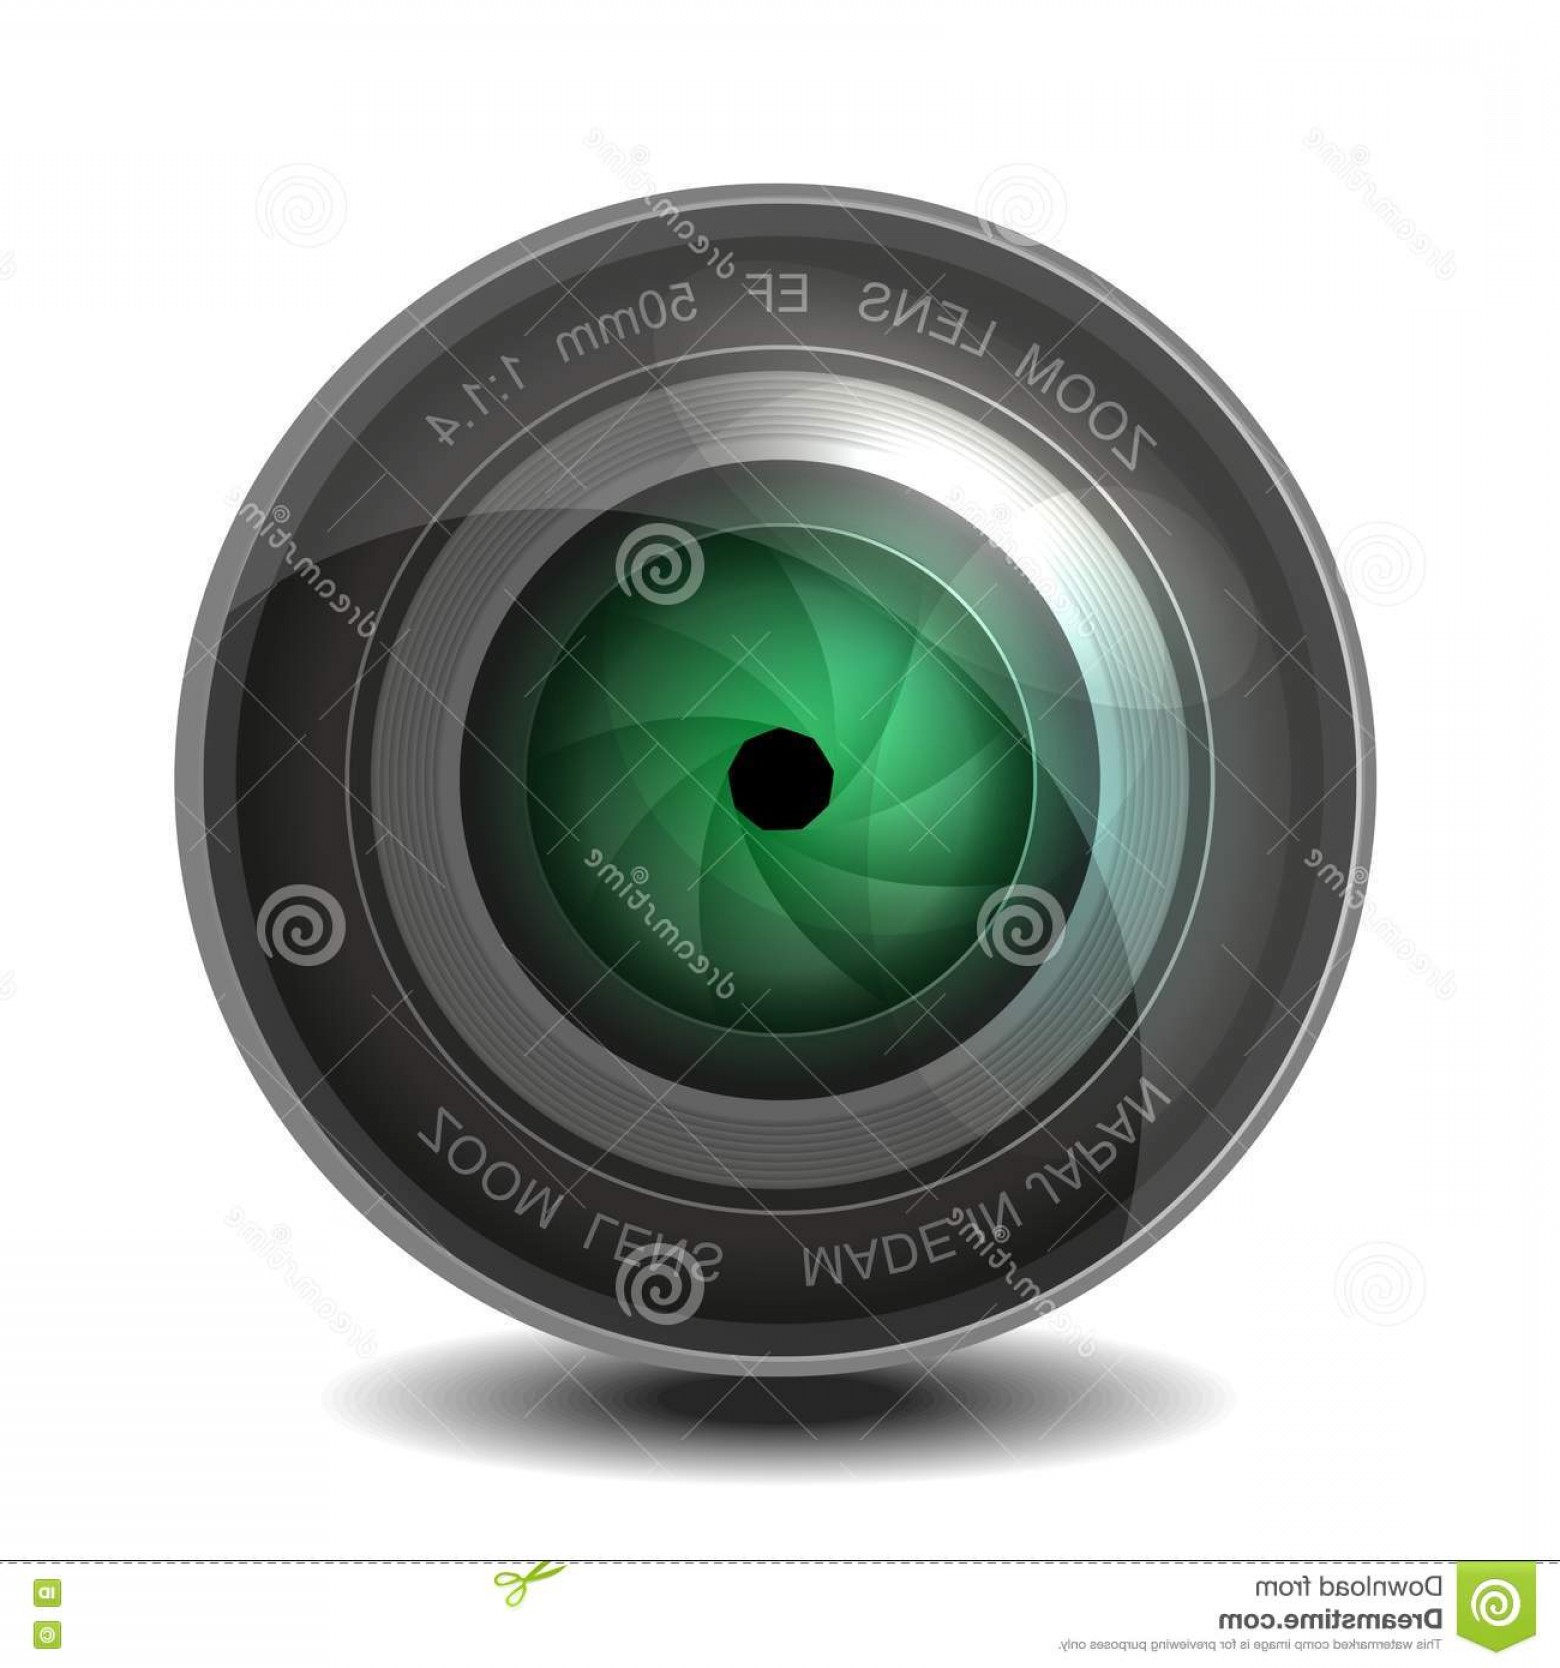 Hires Camera Lens Vector: Royalty Free Stock Photography Camera Photo Lens Shutter Vector Eps Image